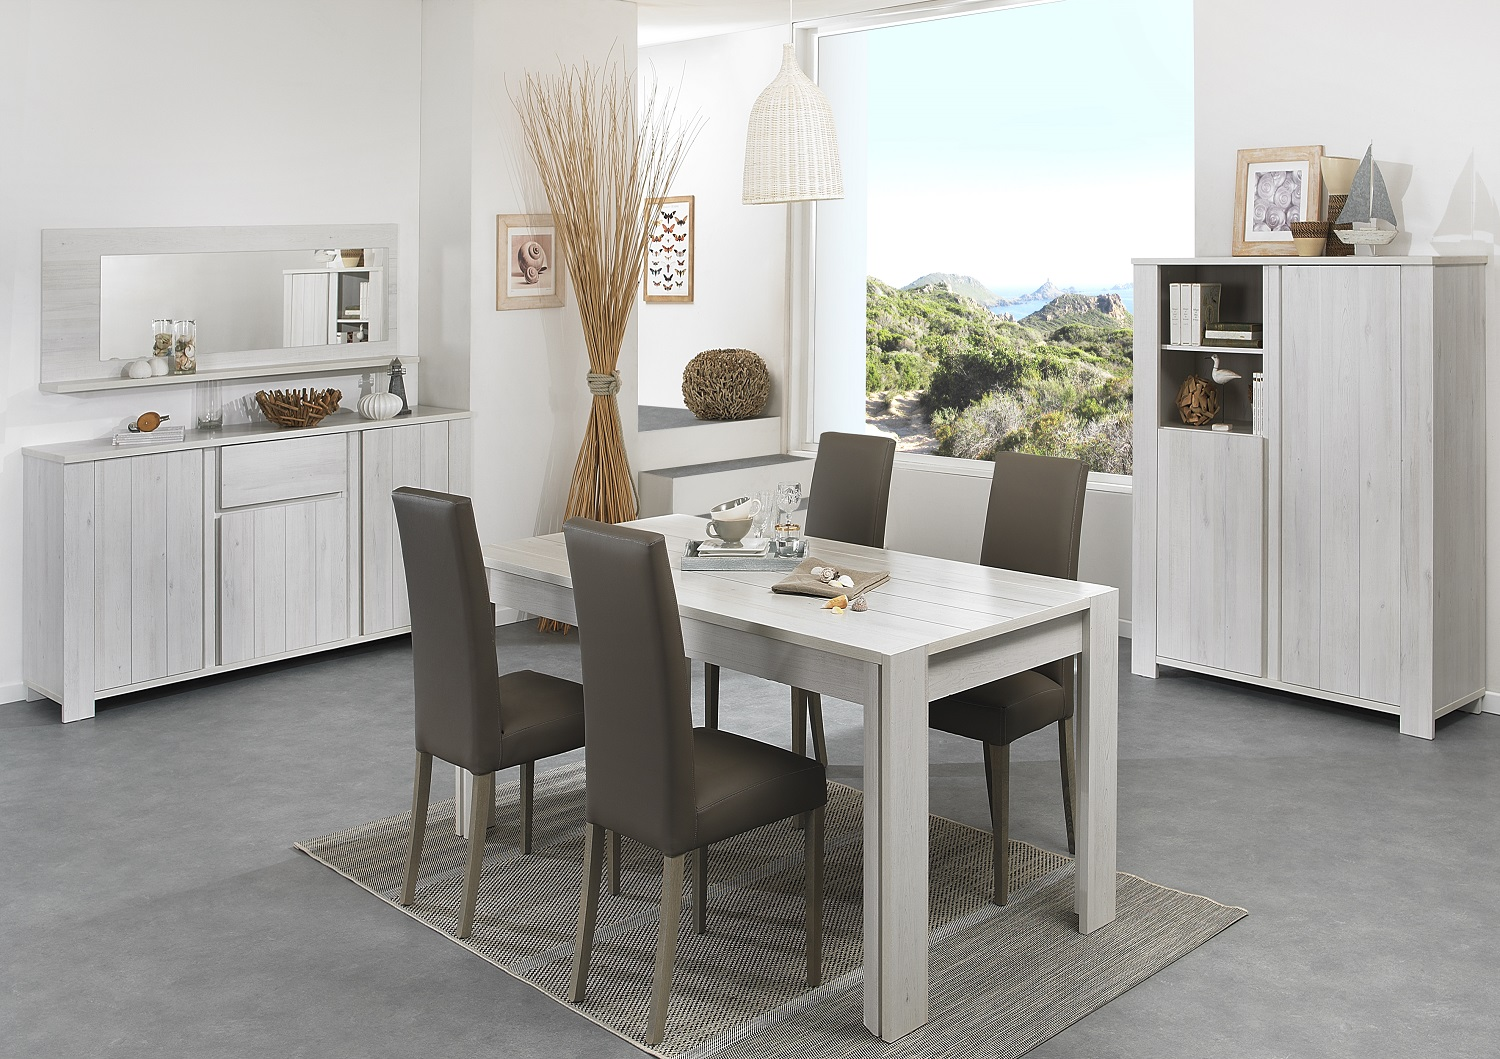 Bilrich Furniture - Clemence Dining Table